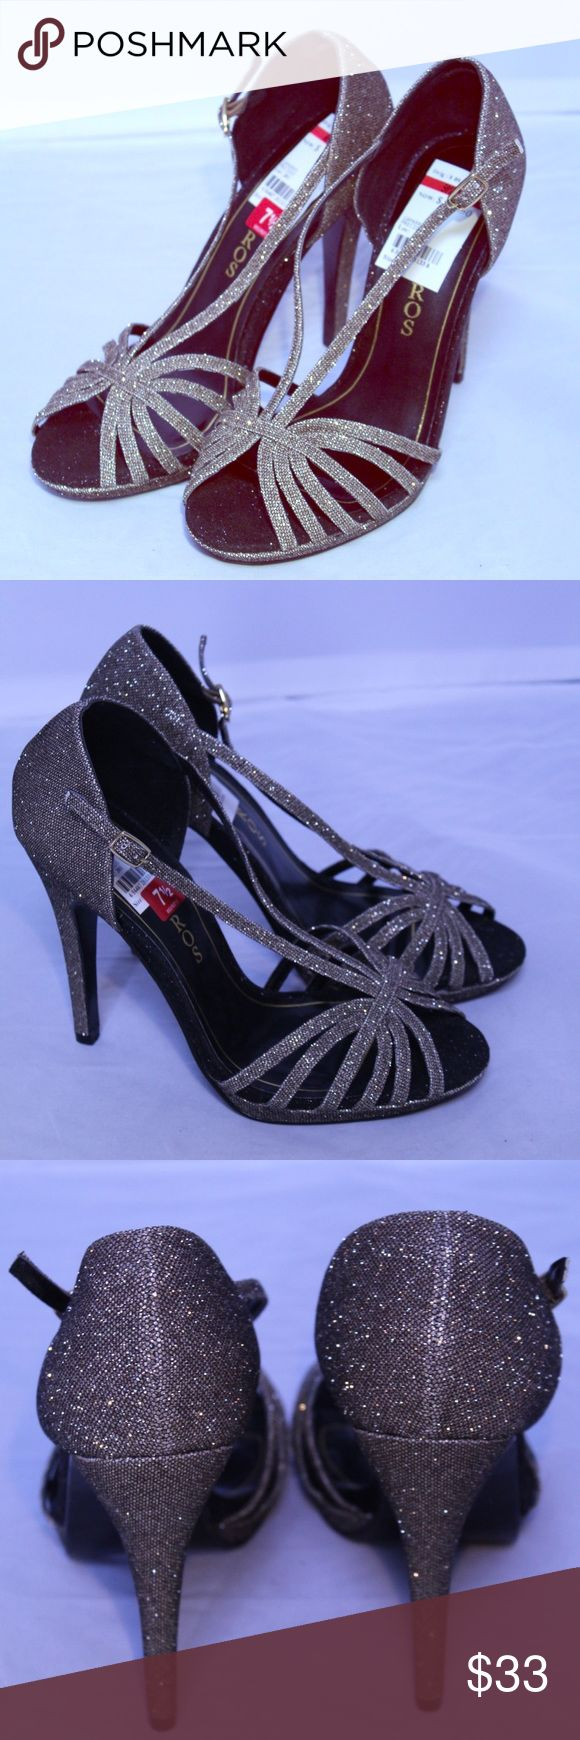 Carlos Santana Metallic Dressy Sandals 7.5 Sparkly strapped sandals perfect for a party. New with tags. Fabric upper, leather sole. Carlos Santana Shoes Sandals